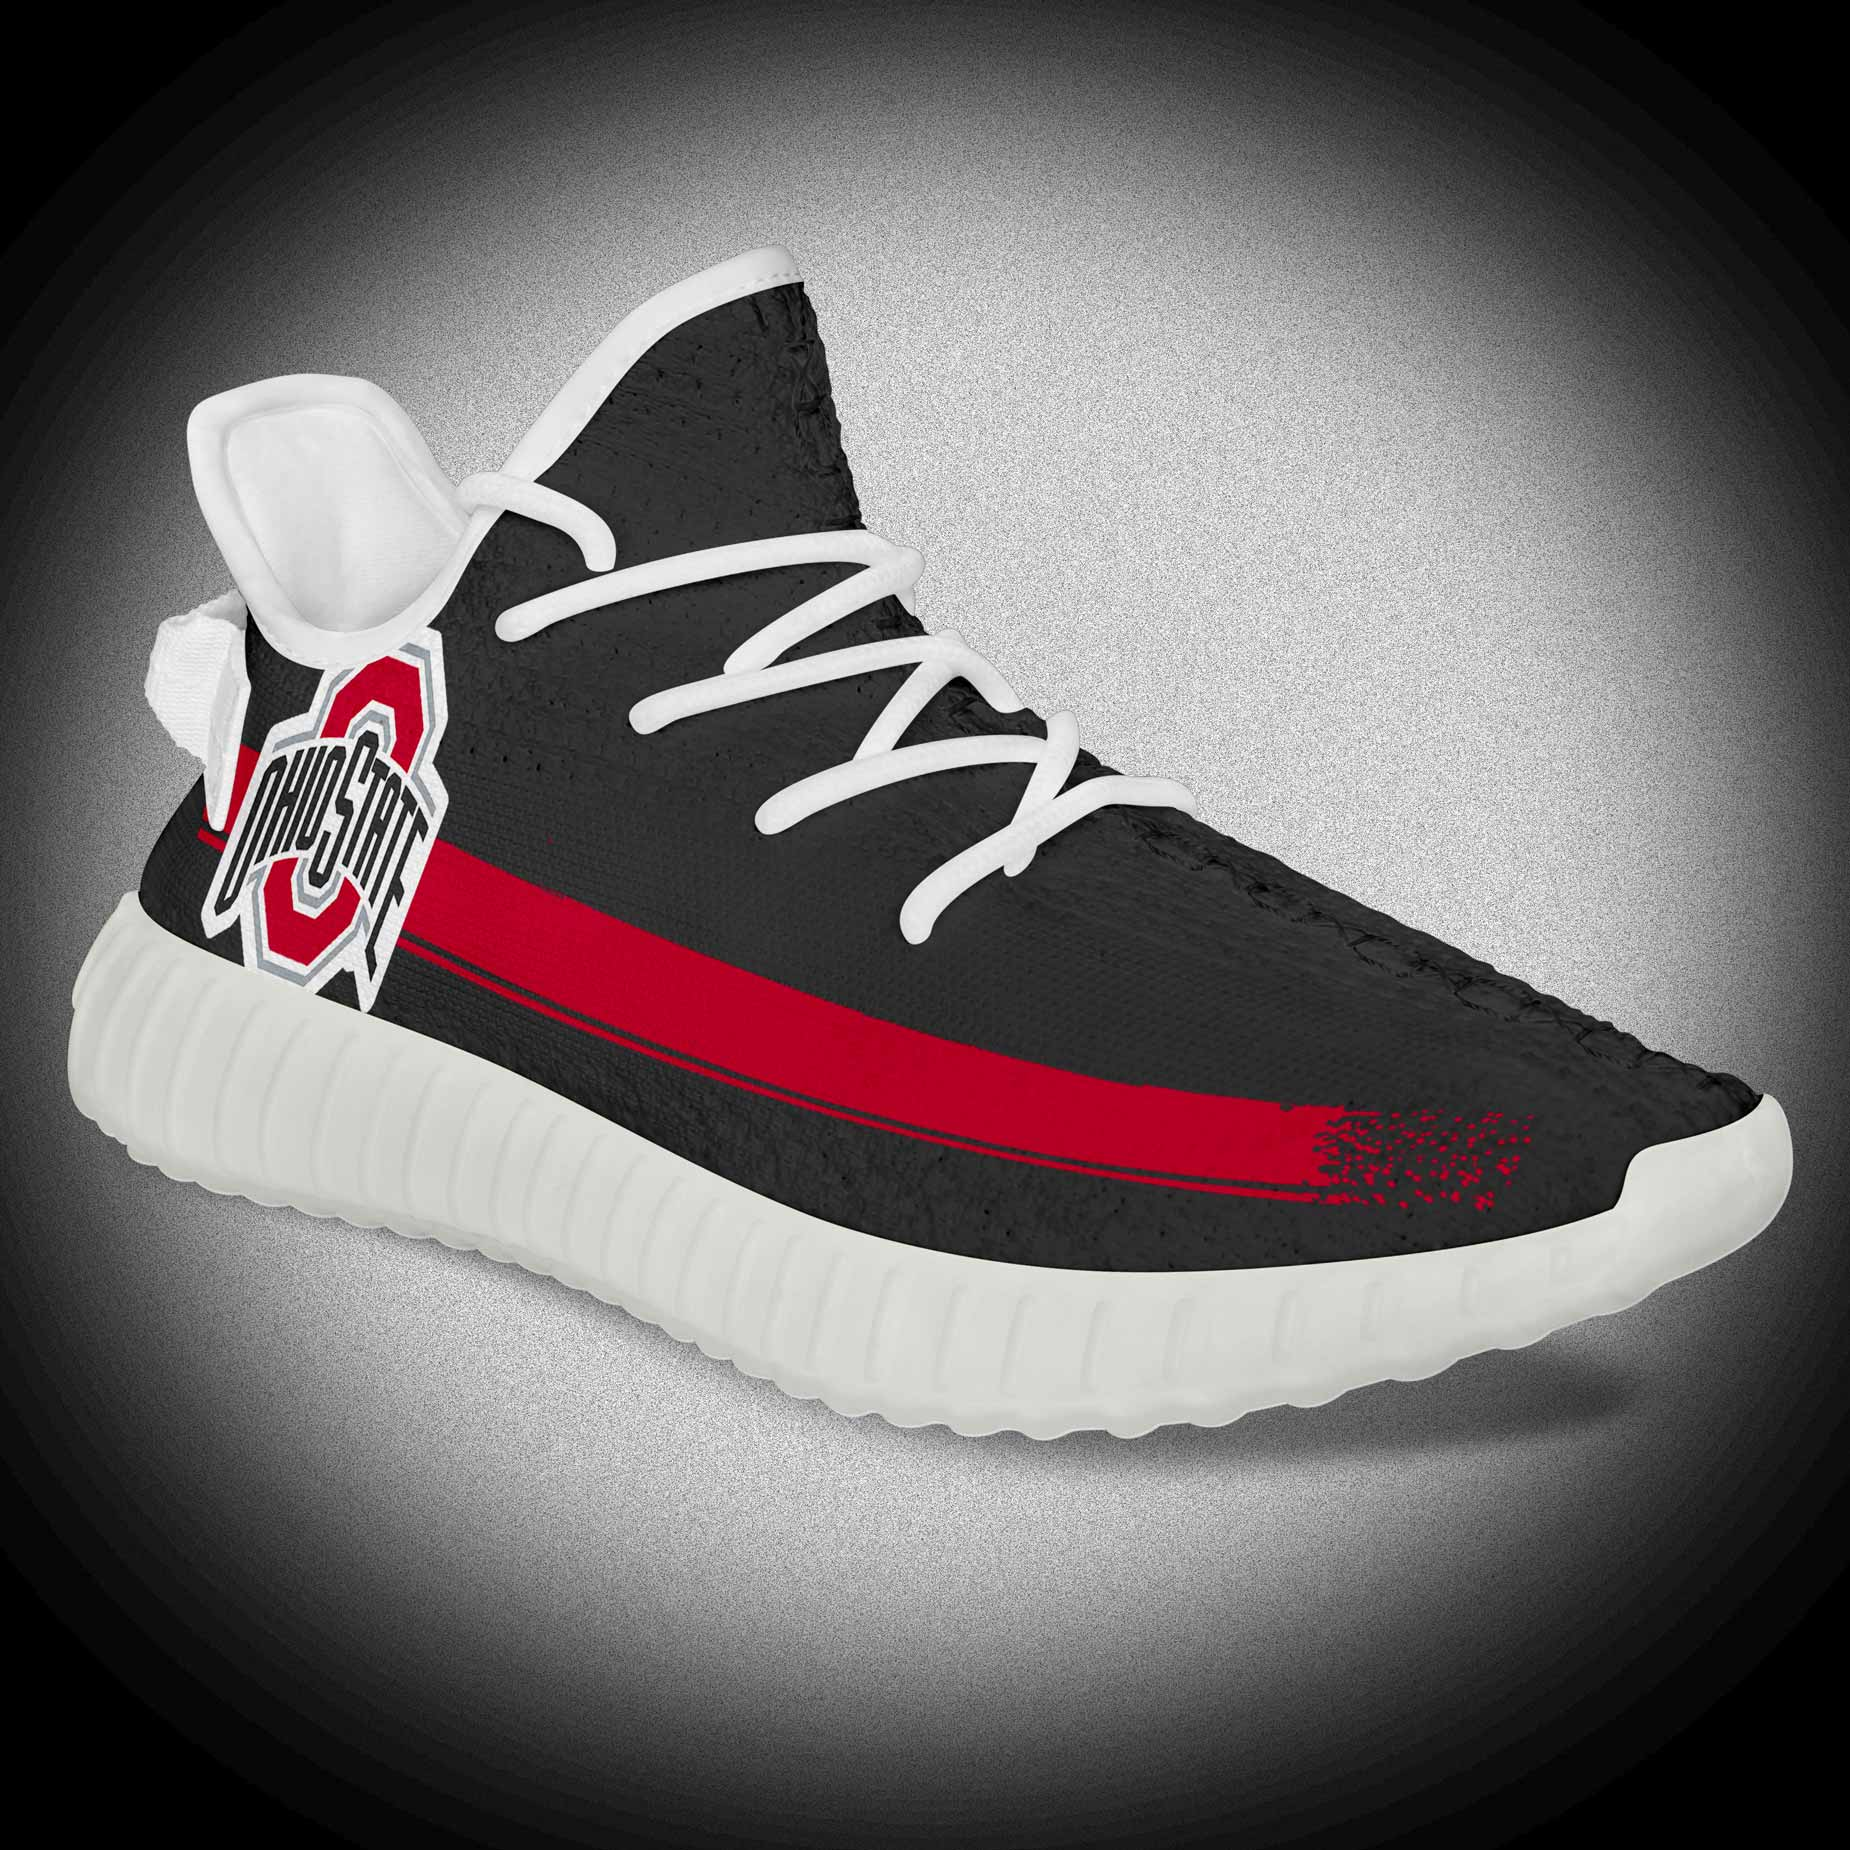 Customized Air Cushion Sport Yeezy 350 Sneakers for Men